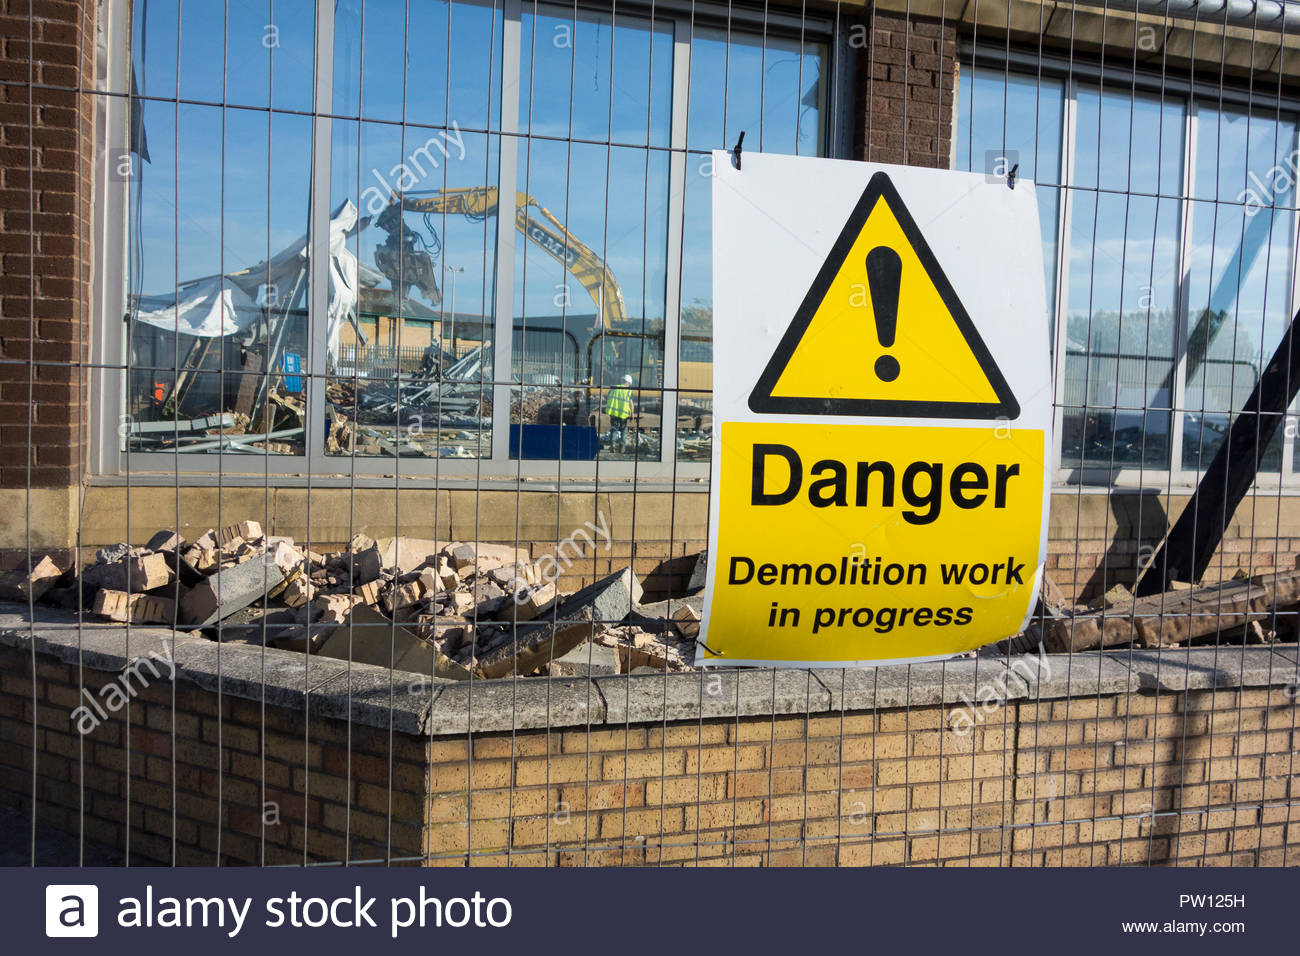 Danger, Demolition Work in Progress sign at the Demolition of an Aldi Store on Marine Road, Morecambe, following construction of a new store next door - Stock Image